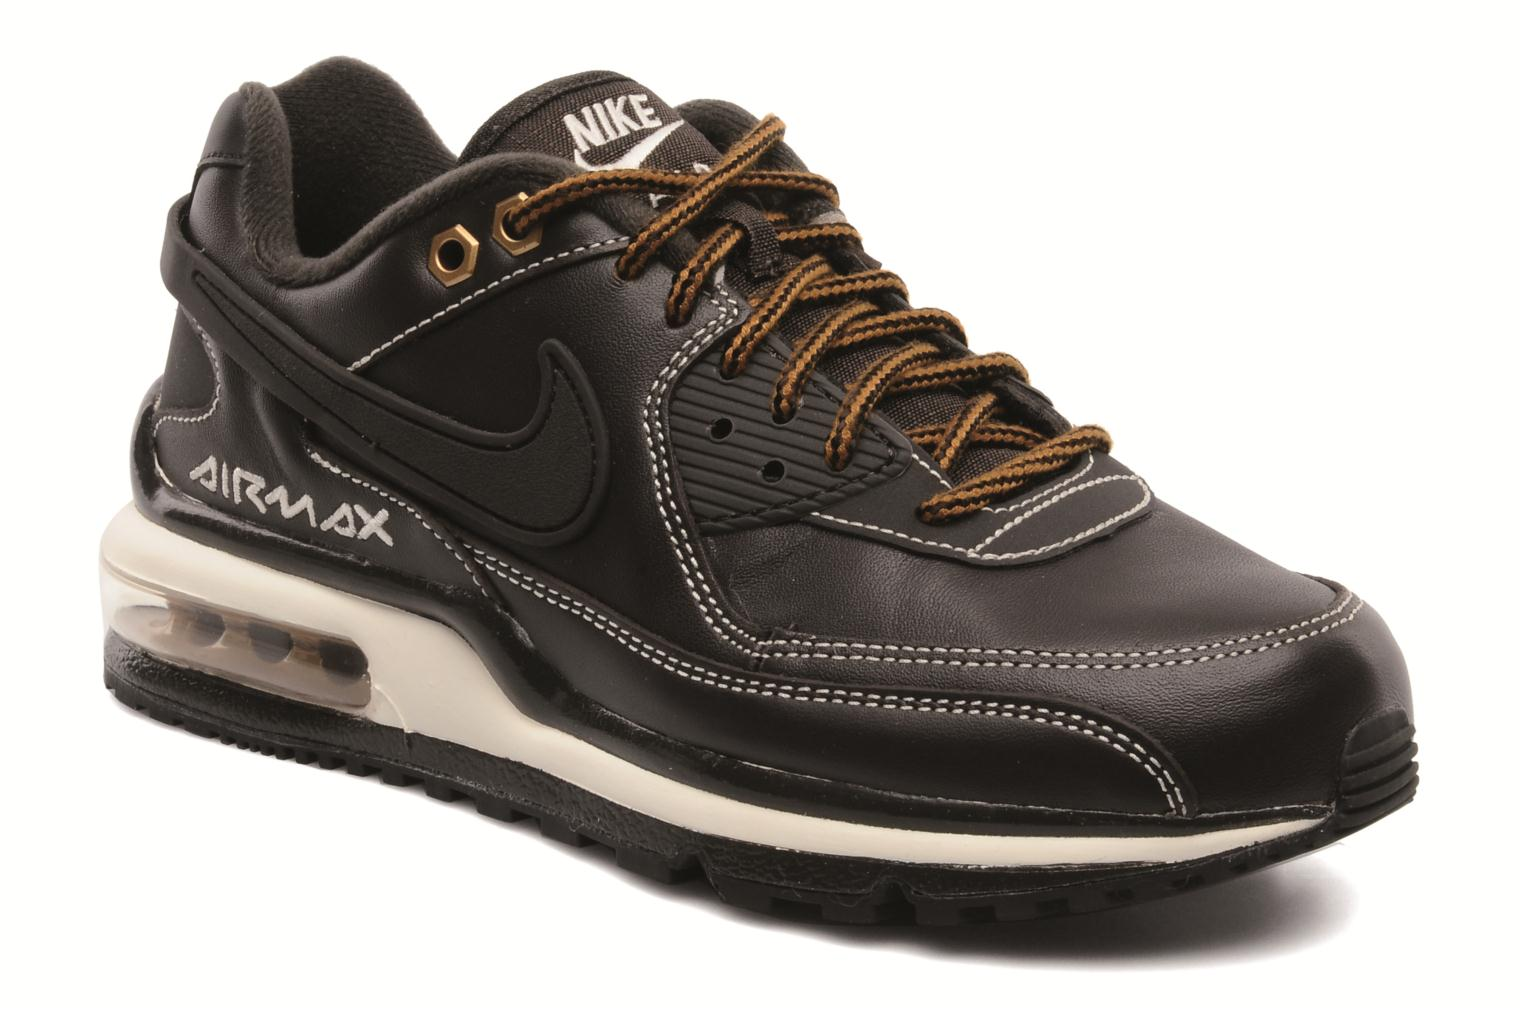 amazone Footaction prix incroyable Air Max Ltd Ii Ainsi Marron Xg75OtezDU